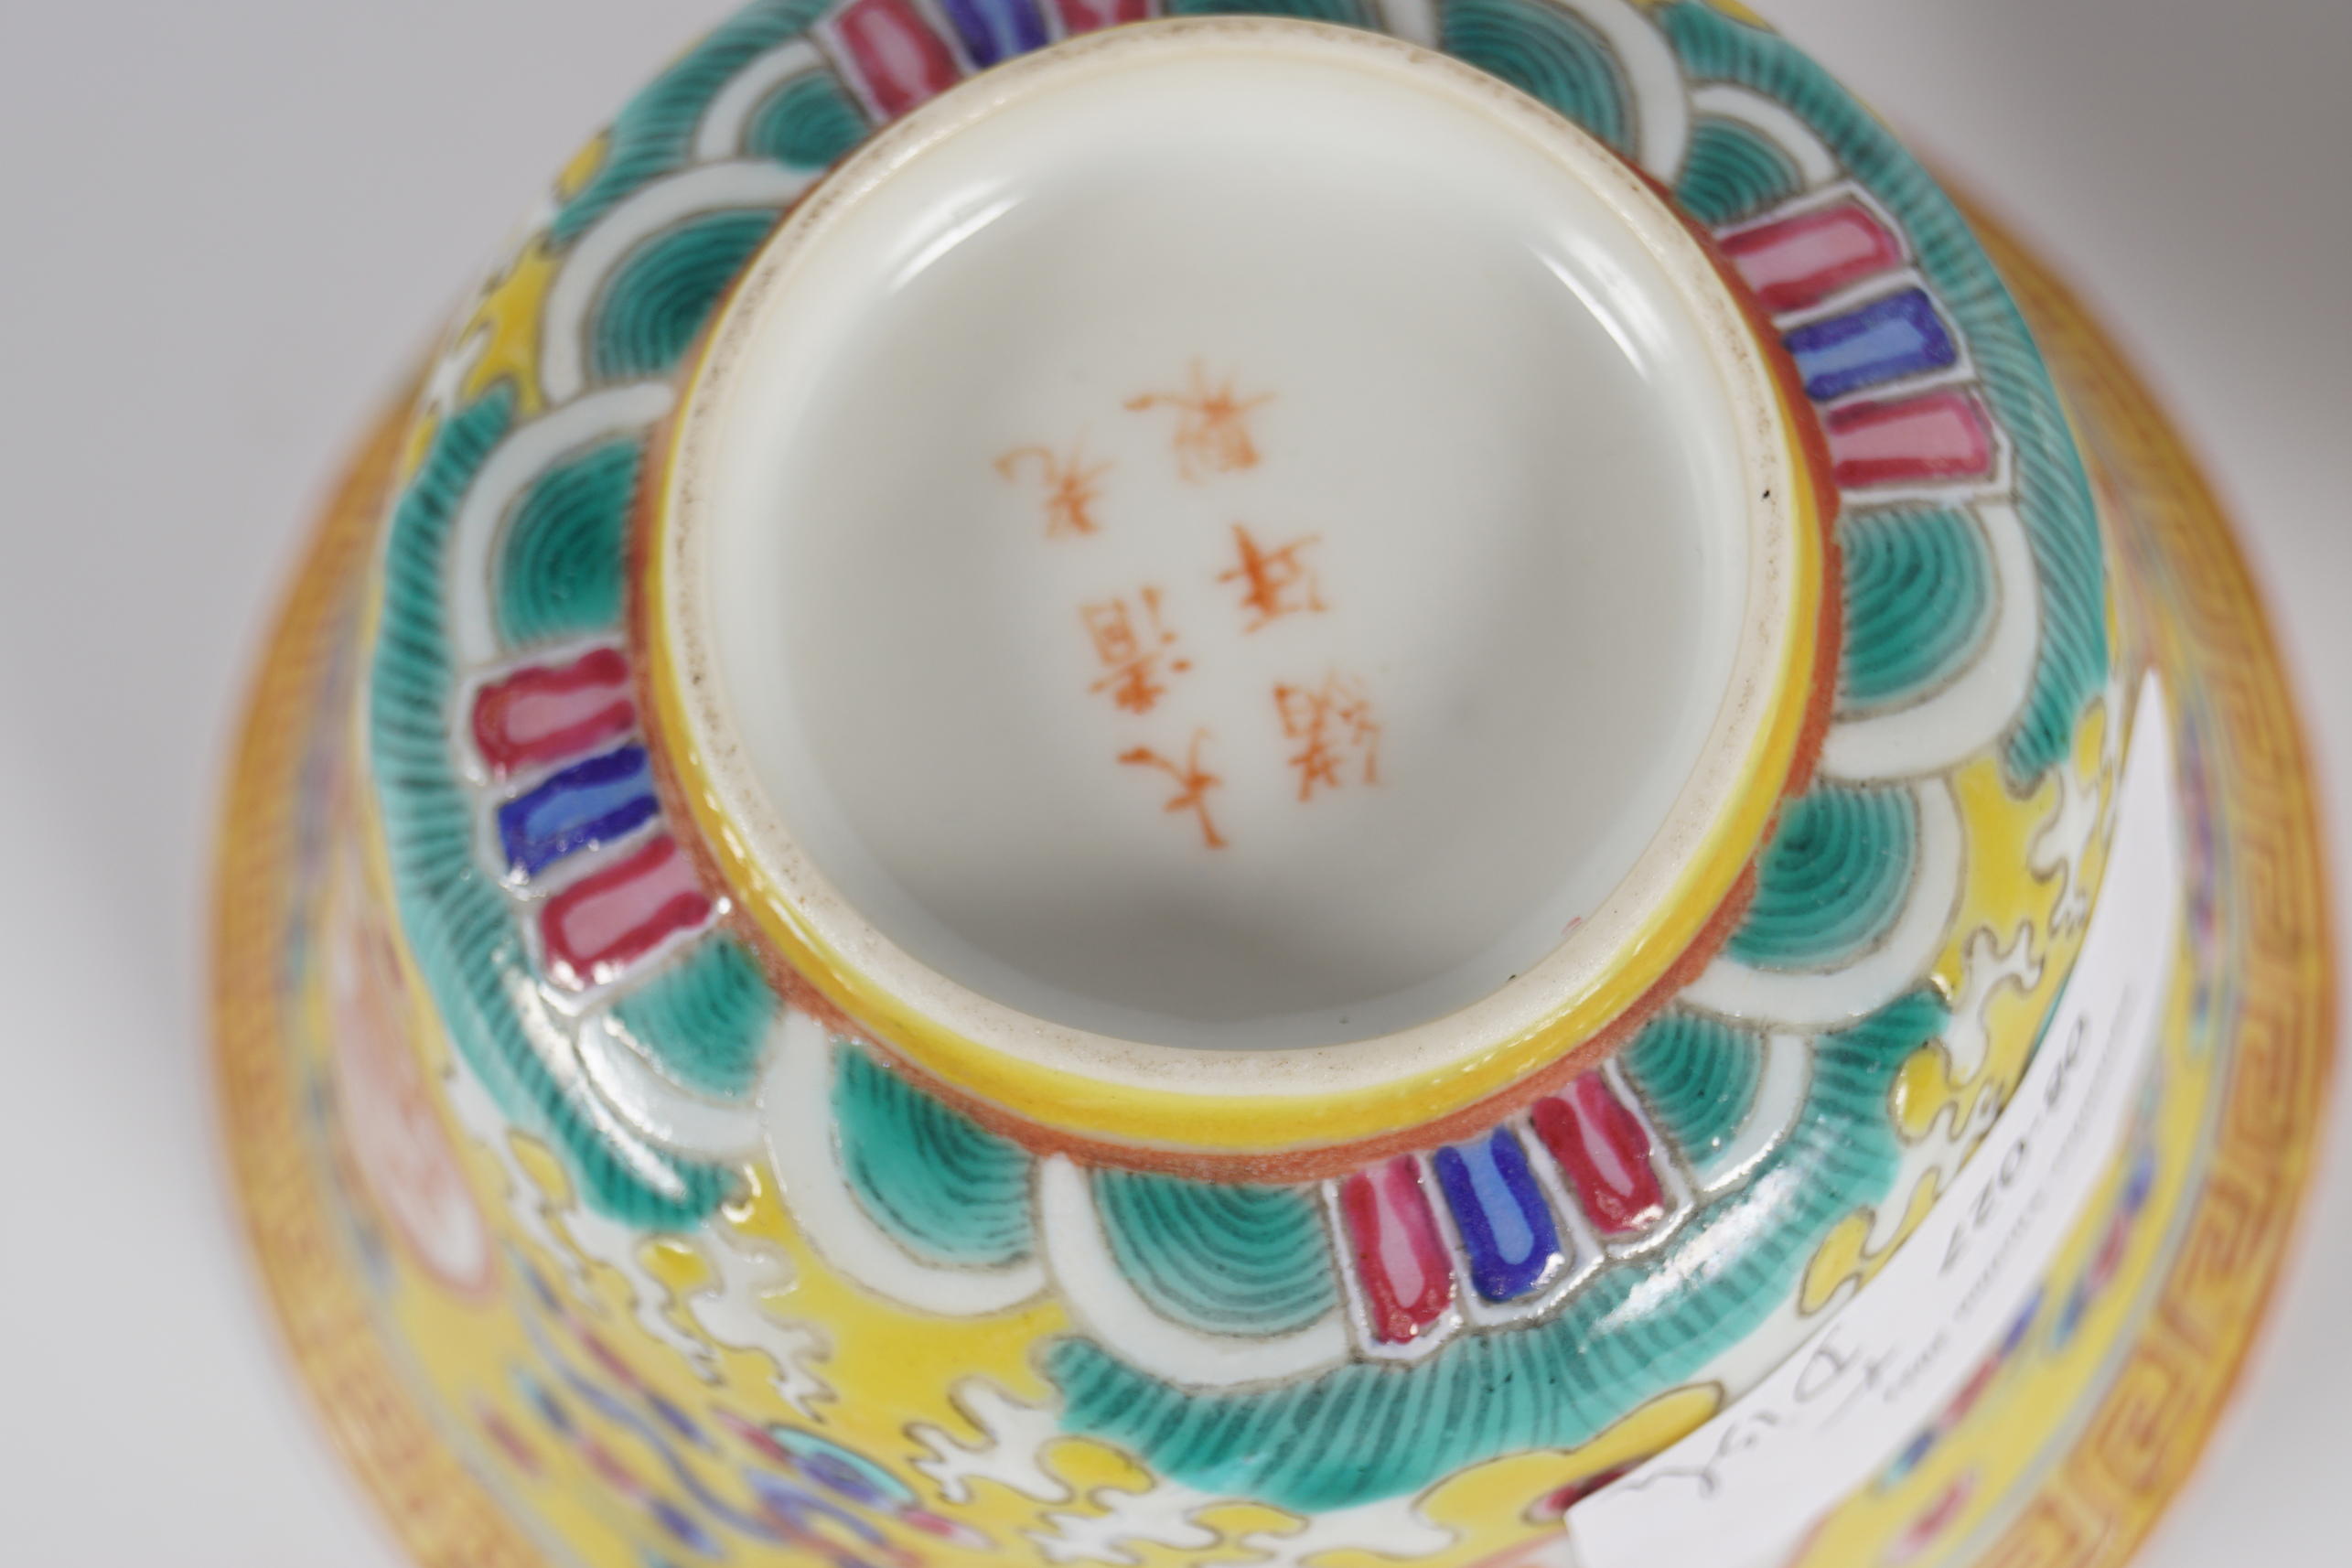 19TH-CENTURY CHINESE FAMILLE ROSE CUP AND SAUCER - Image 3 of 5